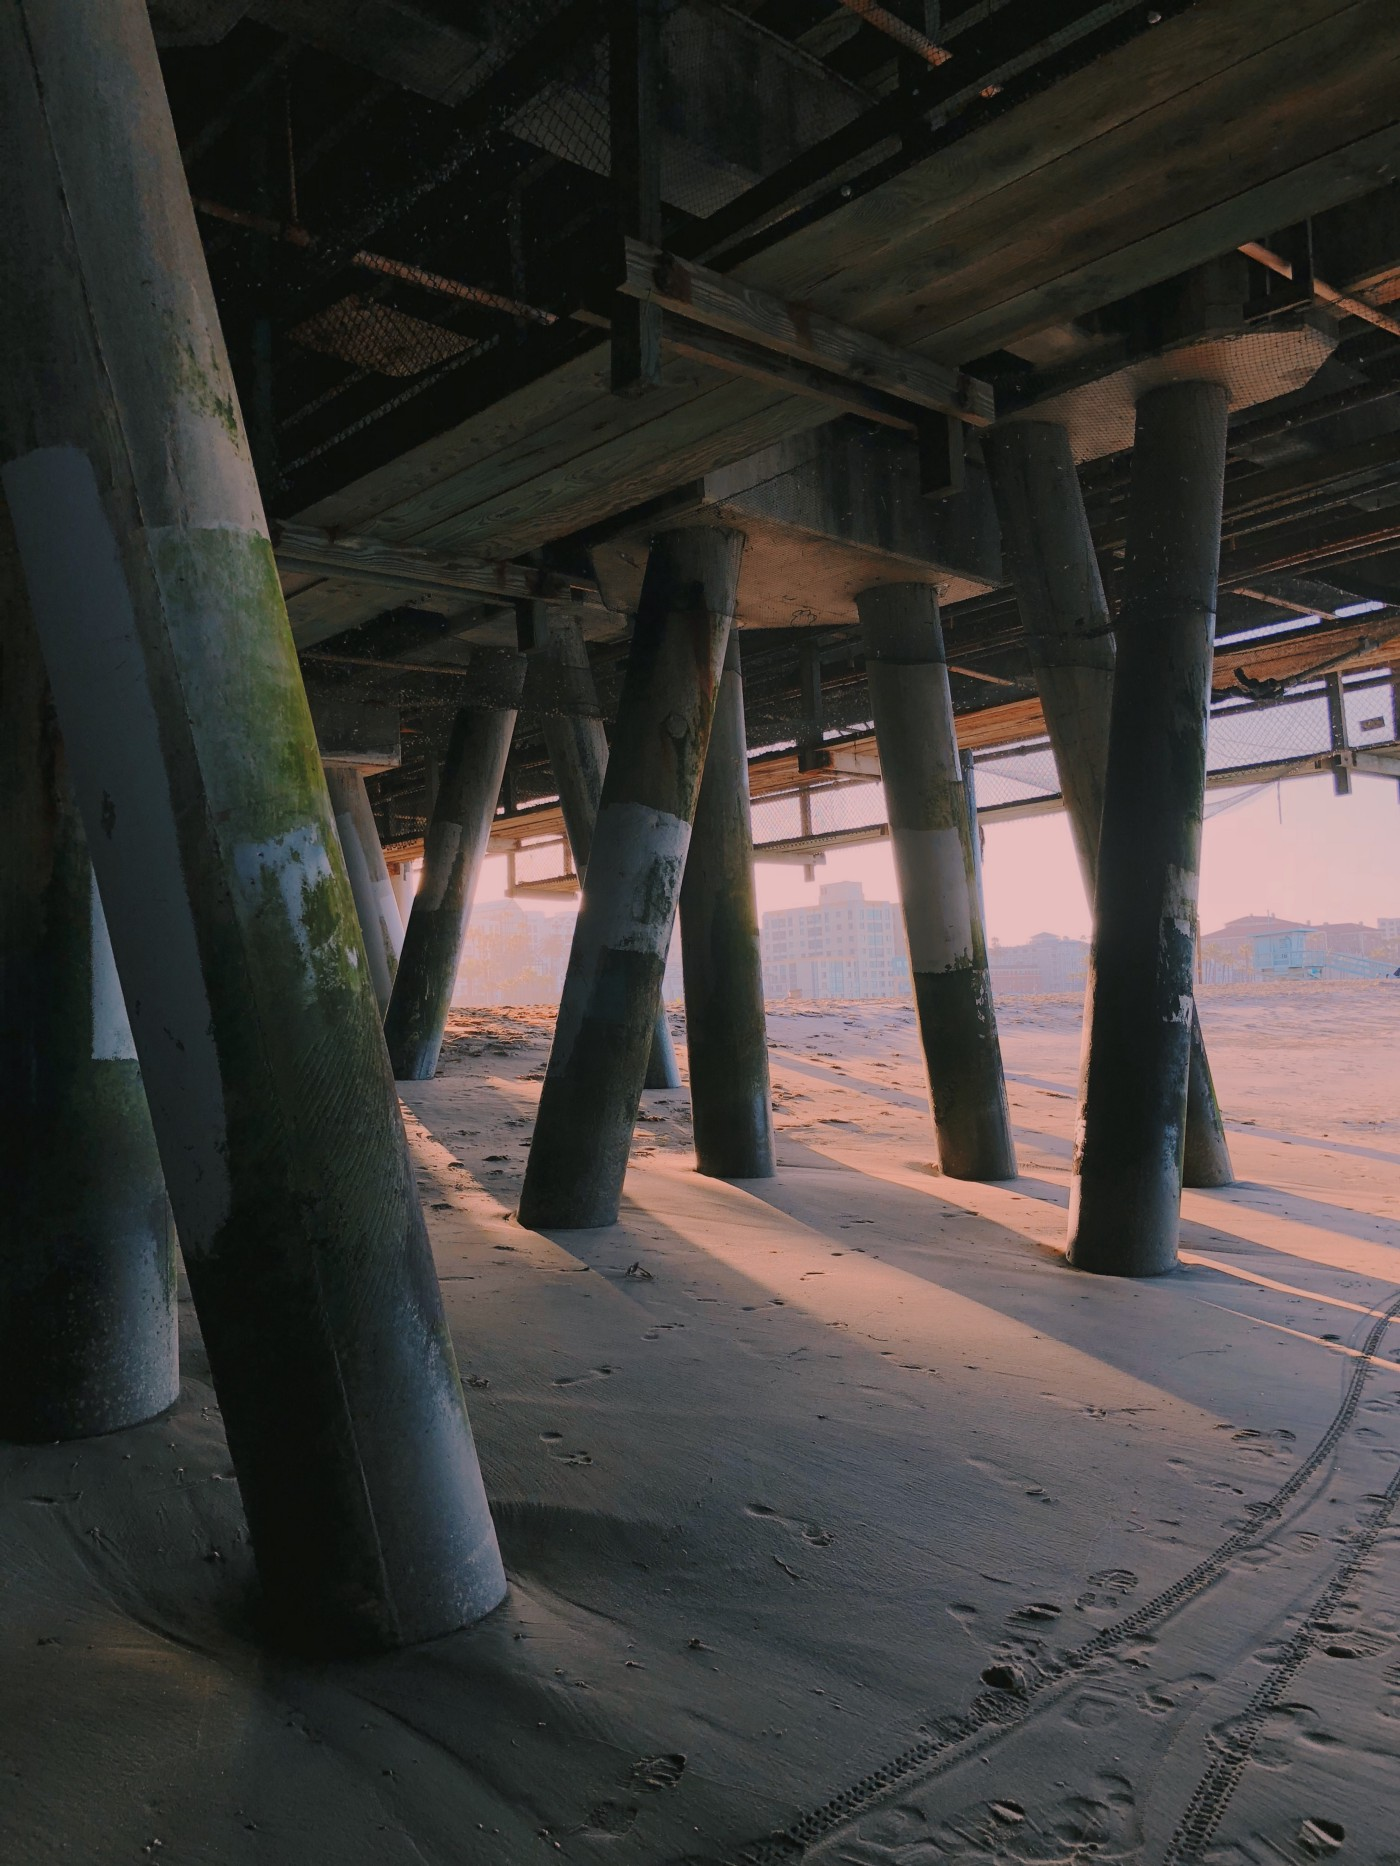 a set of pillars maintaining a structure